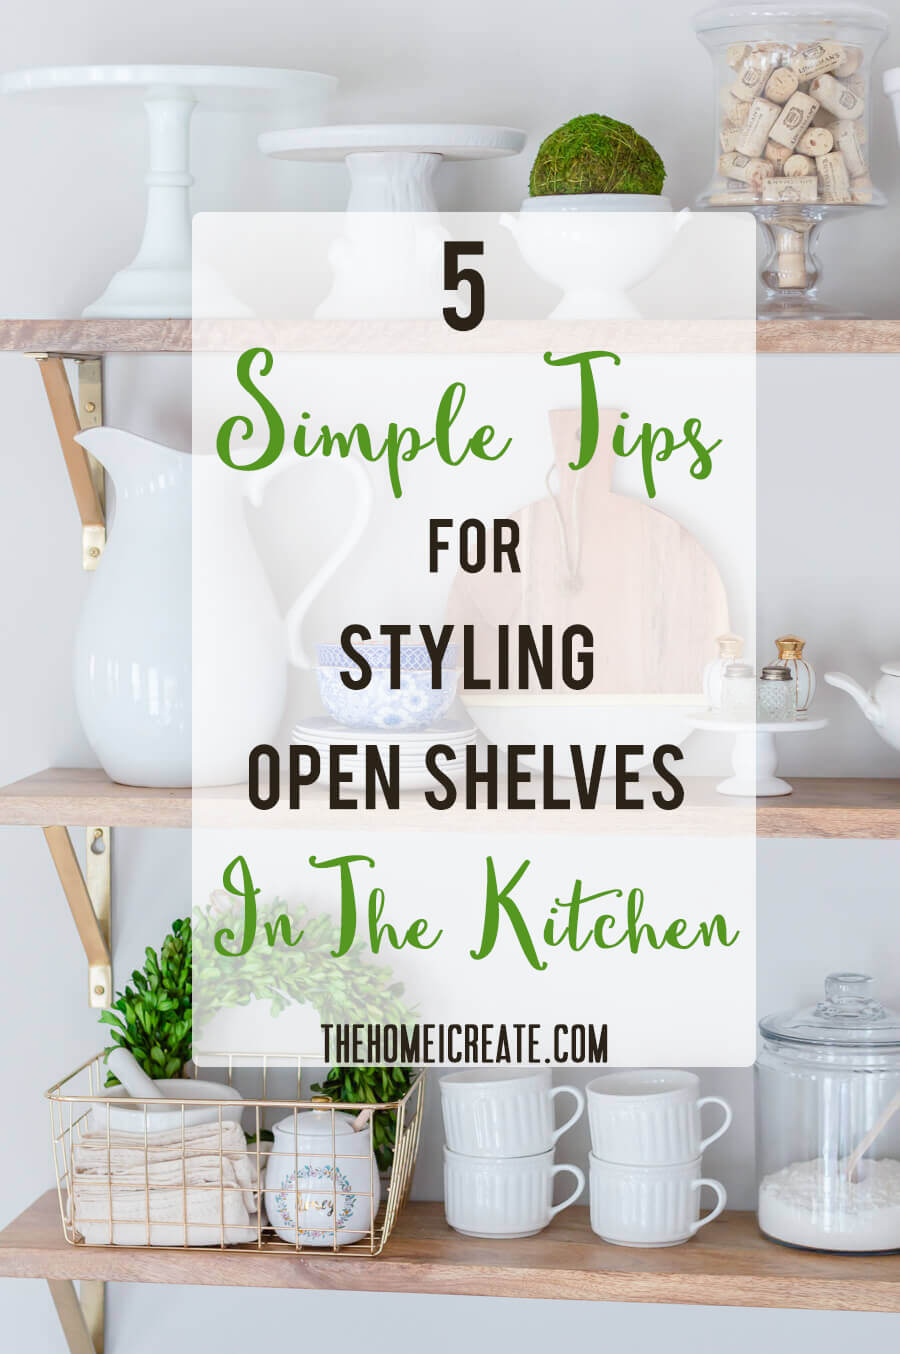 I use to struggle with styling my open shelves, but not anymore. I'm sharing my 5 simple tips for styling open shelves in the kitchen! #thehomeicreate #shelves #homedecor #kitchendcecor #coffeestation